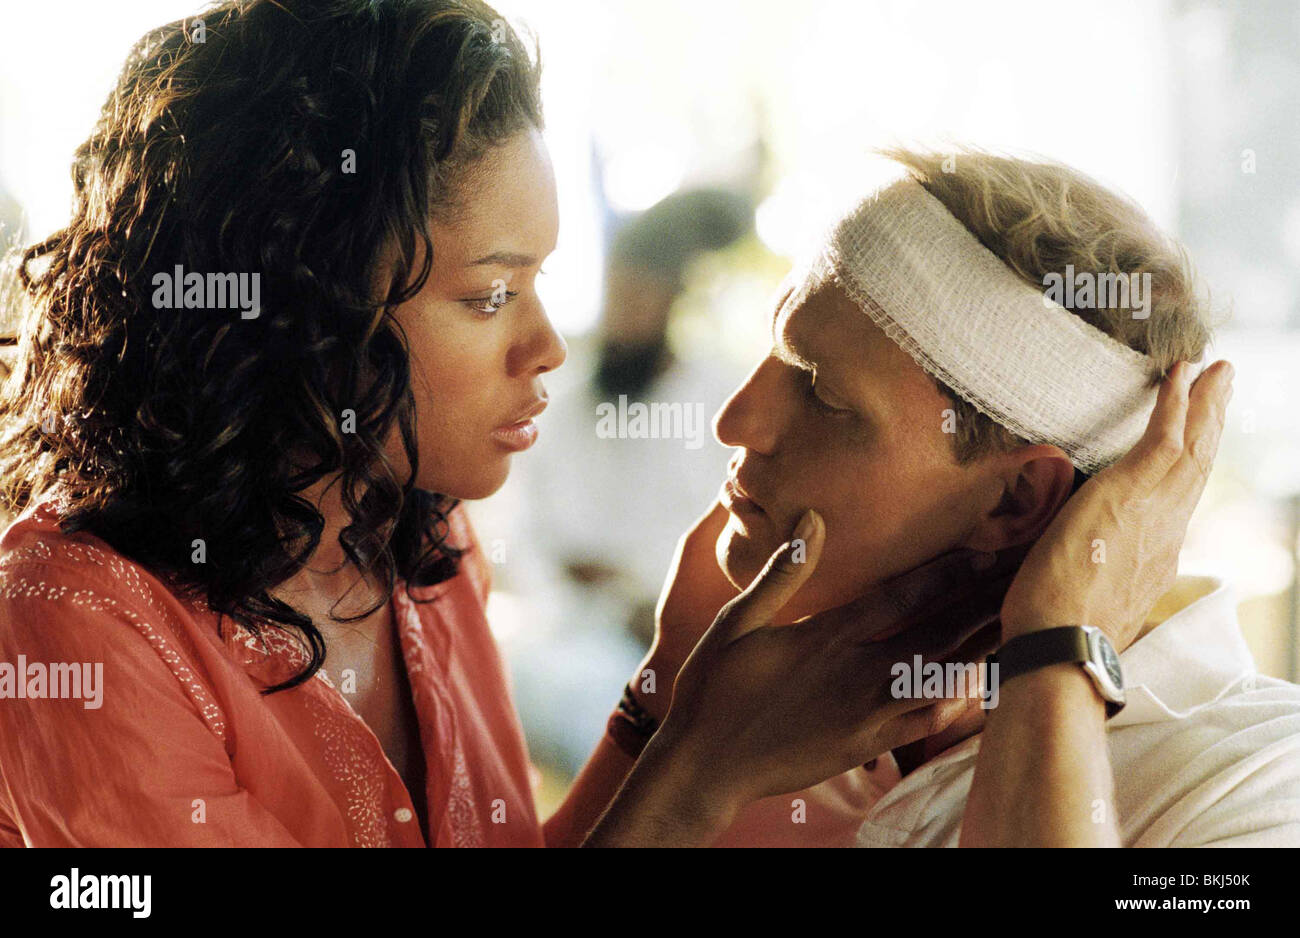 AFTER THE SUNSET (2004) NAOMIE HARRIS, WOODY HARRELSON ...